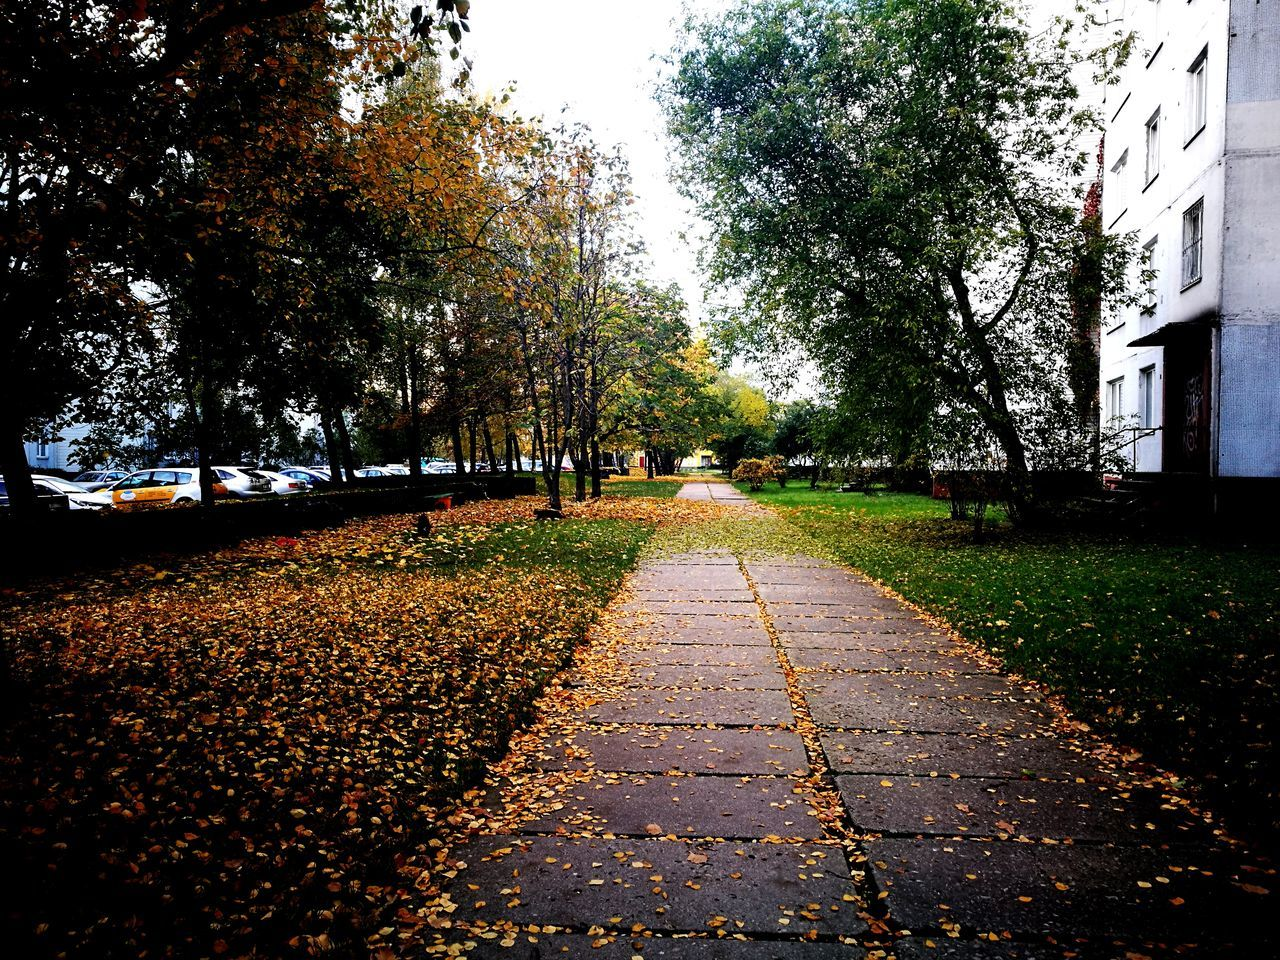 Daylight , Daylight Photography Freshness Cold Temperature No People Autumn🍁🍁🍁 Autumn Leaves Autumn Colors Autumn Beauty In Nature Outdoors Day Winter Nature 🌲 Tree Urban Road Urban Photography Urban Landscape Daylight Growth Tree The Way Forward Tranquility Change Leaf